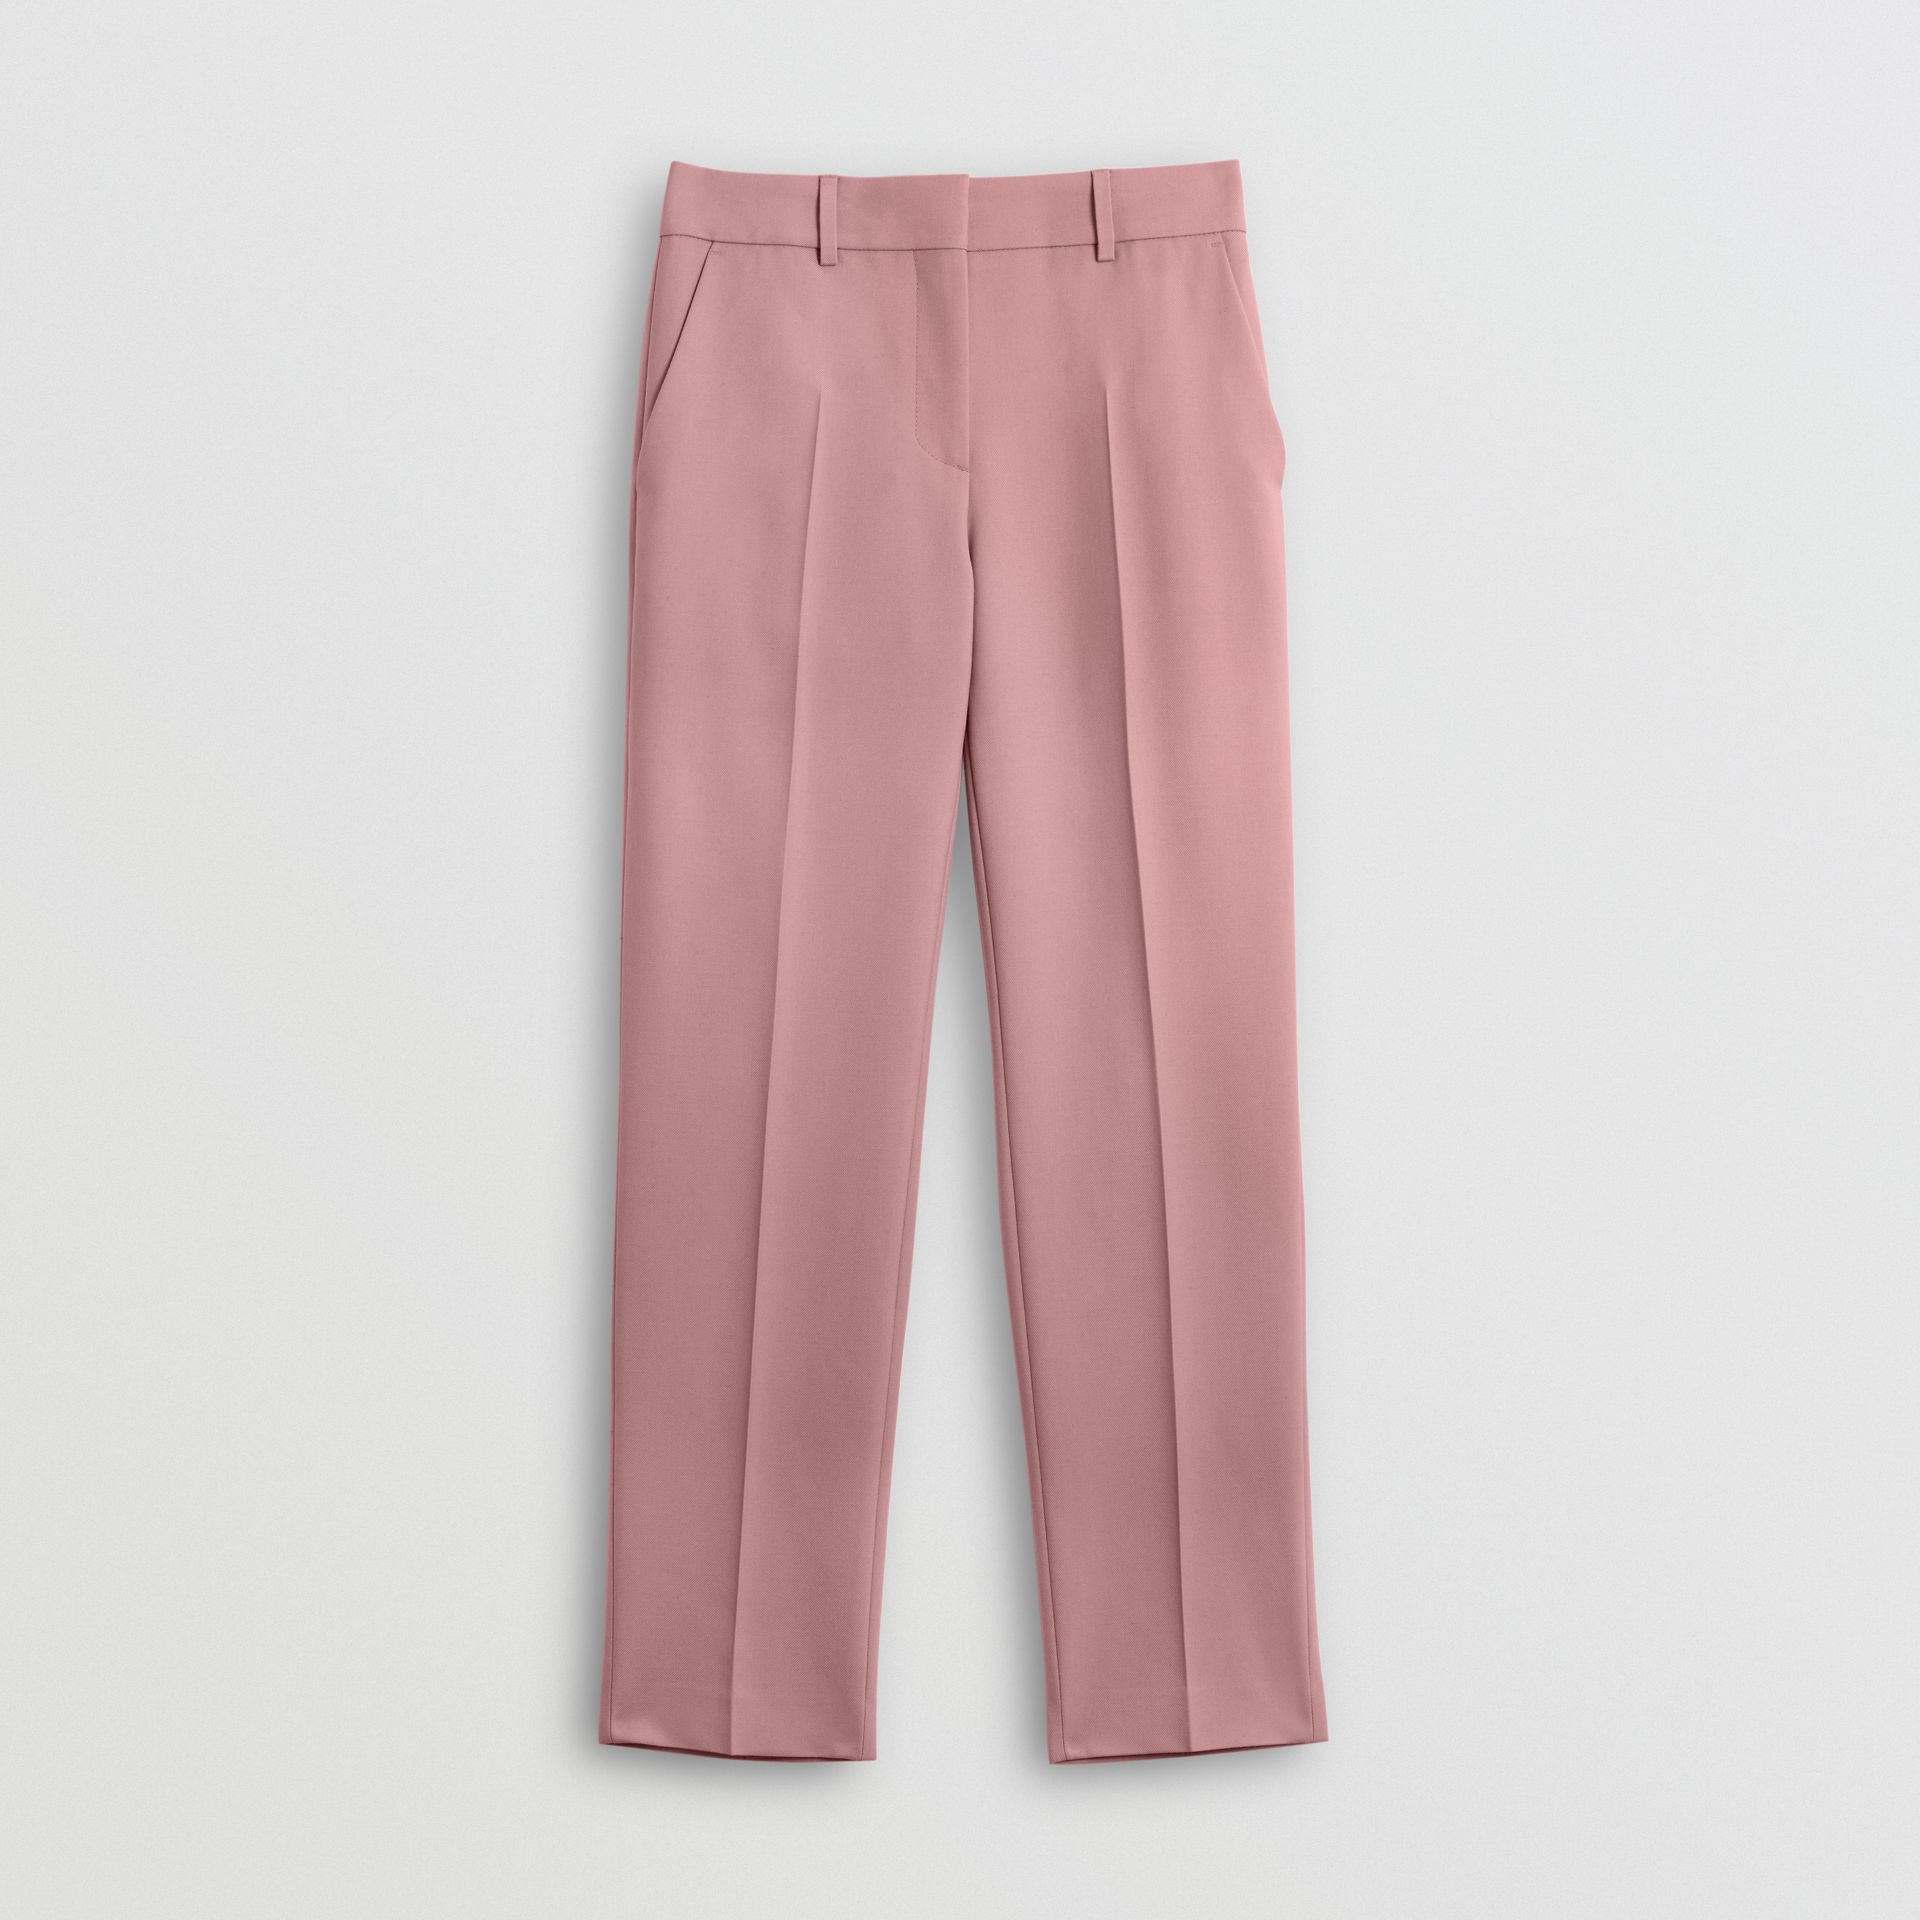 Straight Fit Wool Blend Tailored Trousers in Chalk Pink - Women | Burberry Singapore - gallery image 3